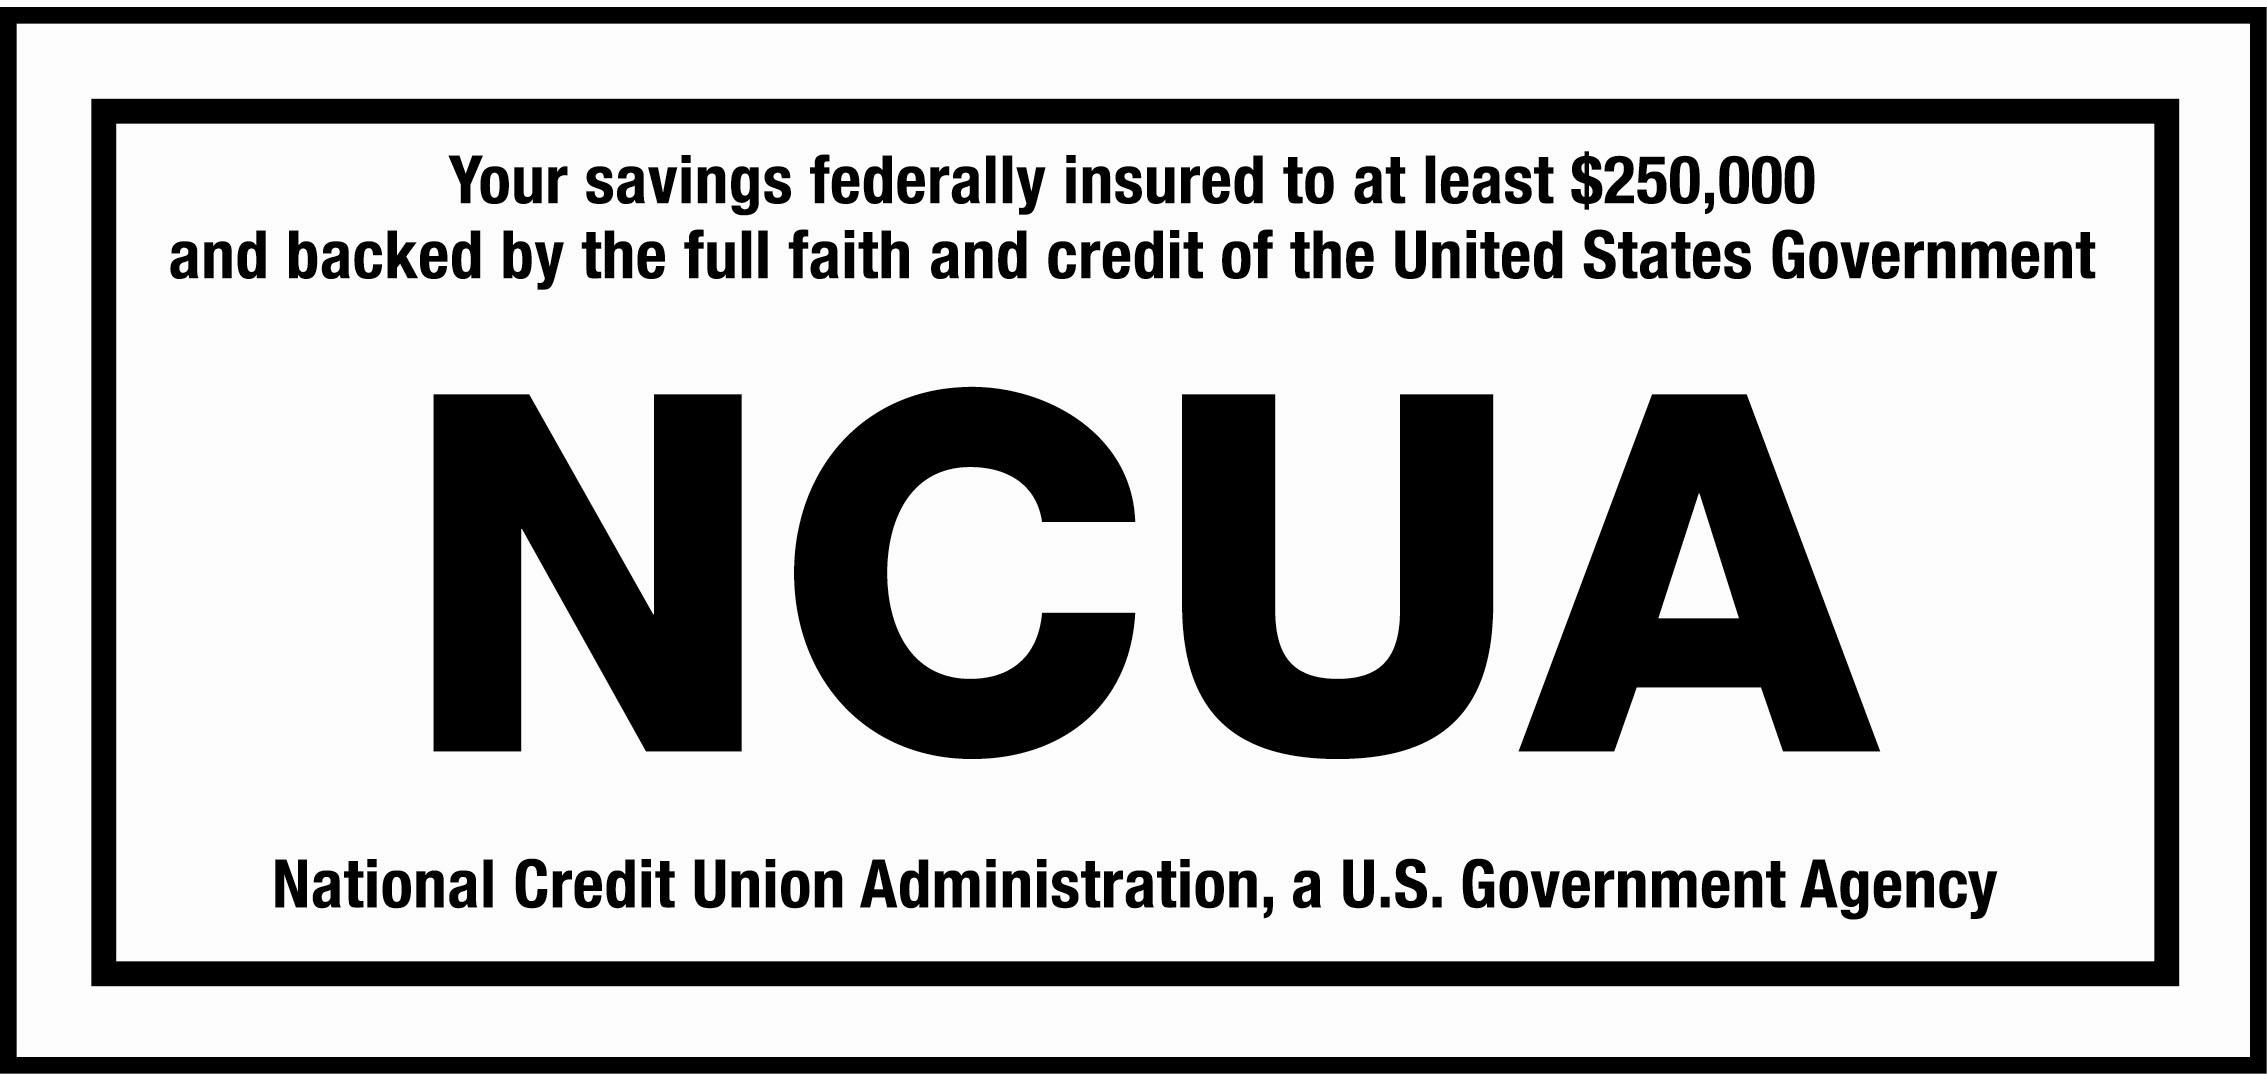 NCUA - Your savings are insured to at least $250,000 by the NCUA, a U.S. Government Agency, and is backed by the full faith and credit of the United States.